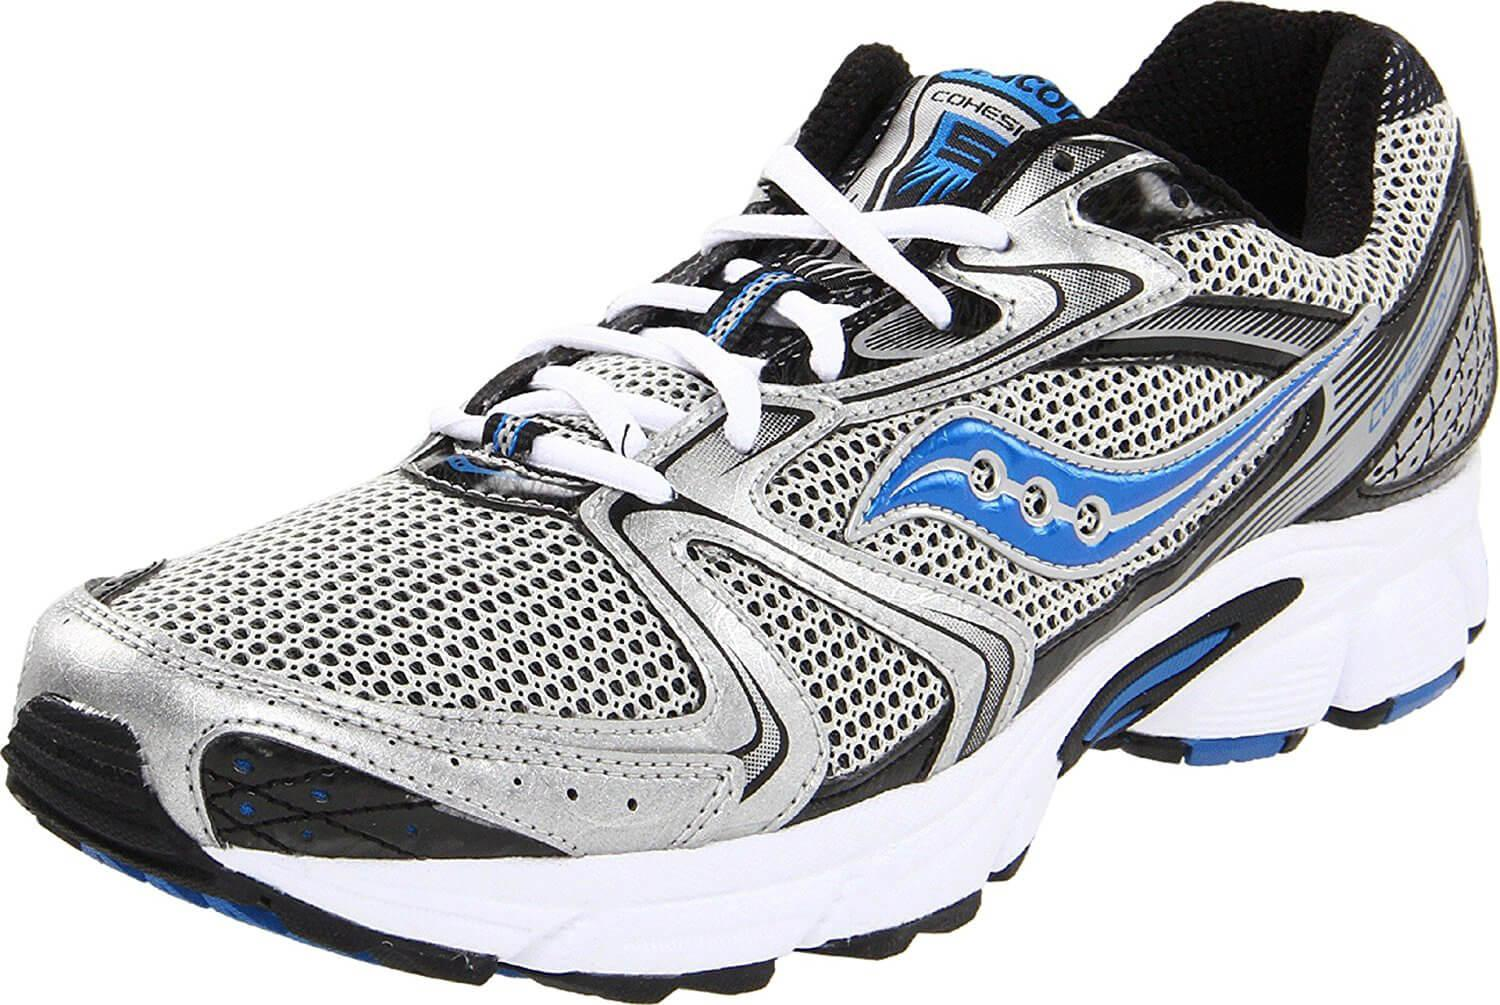 dae0398ef564 Saucony Grid Cohesion 5 - To Buy or Not in Apr 2019